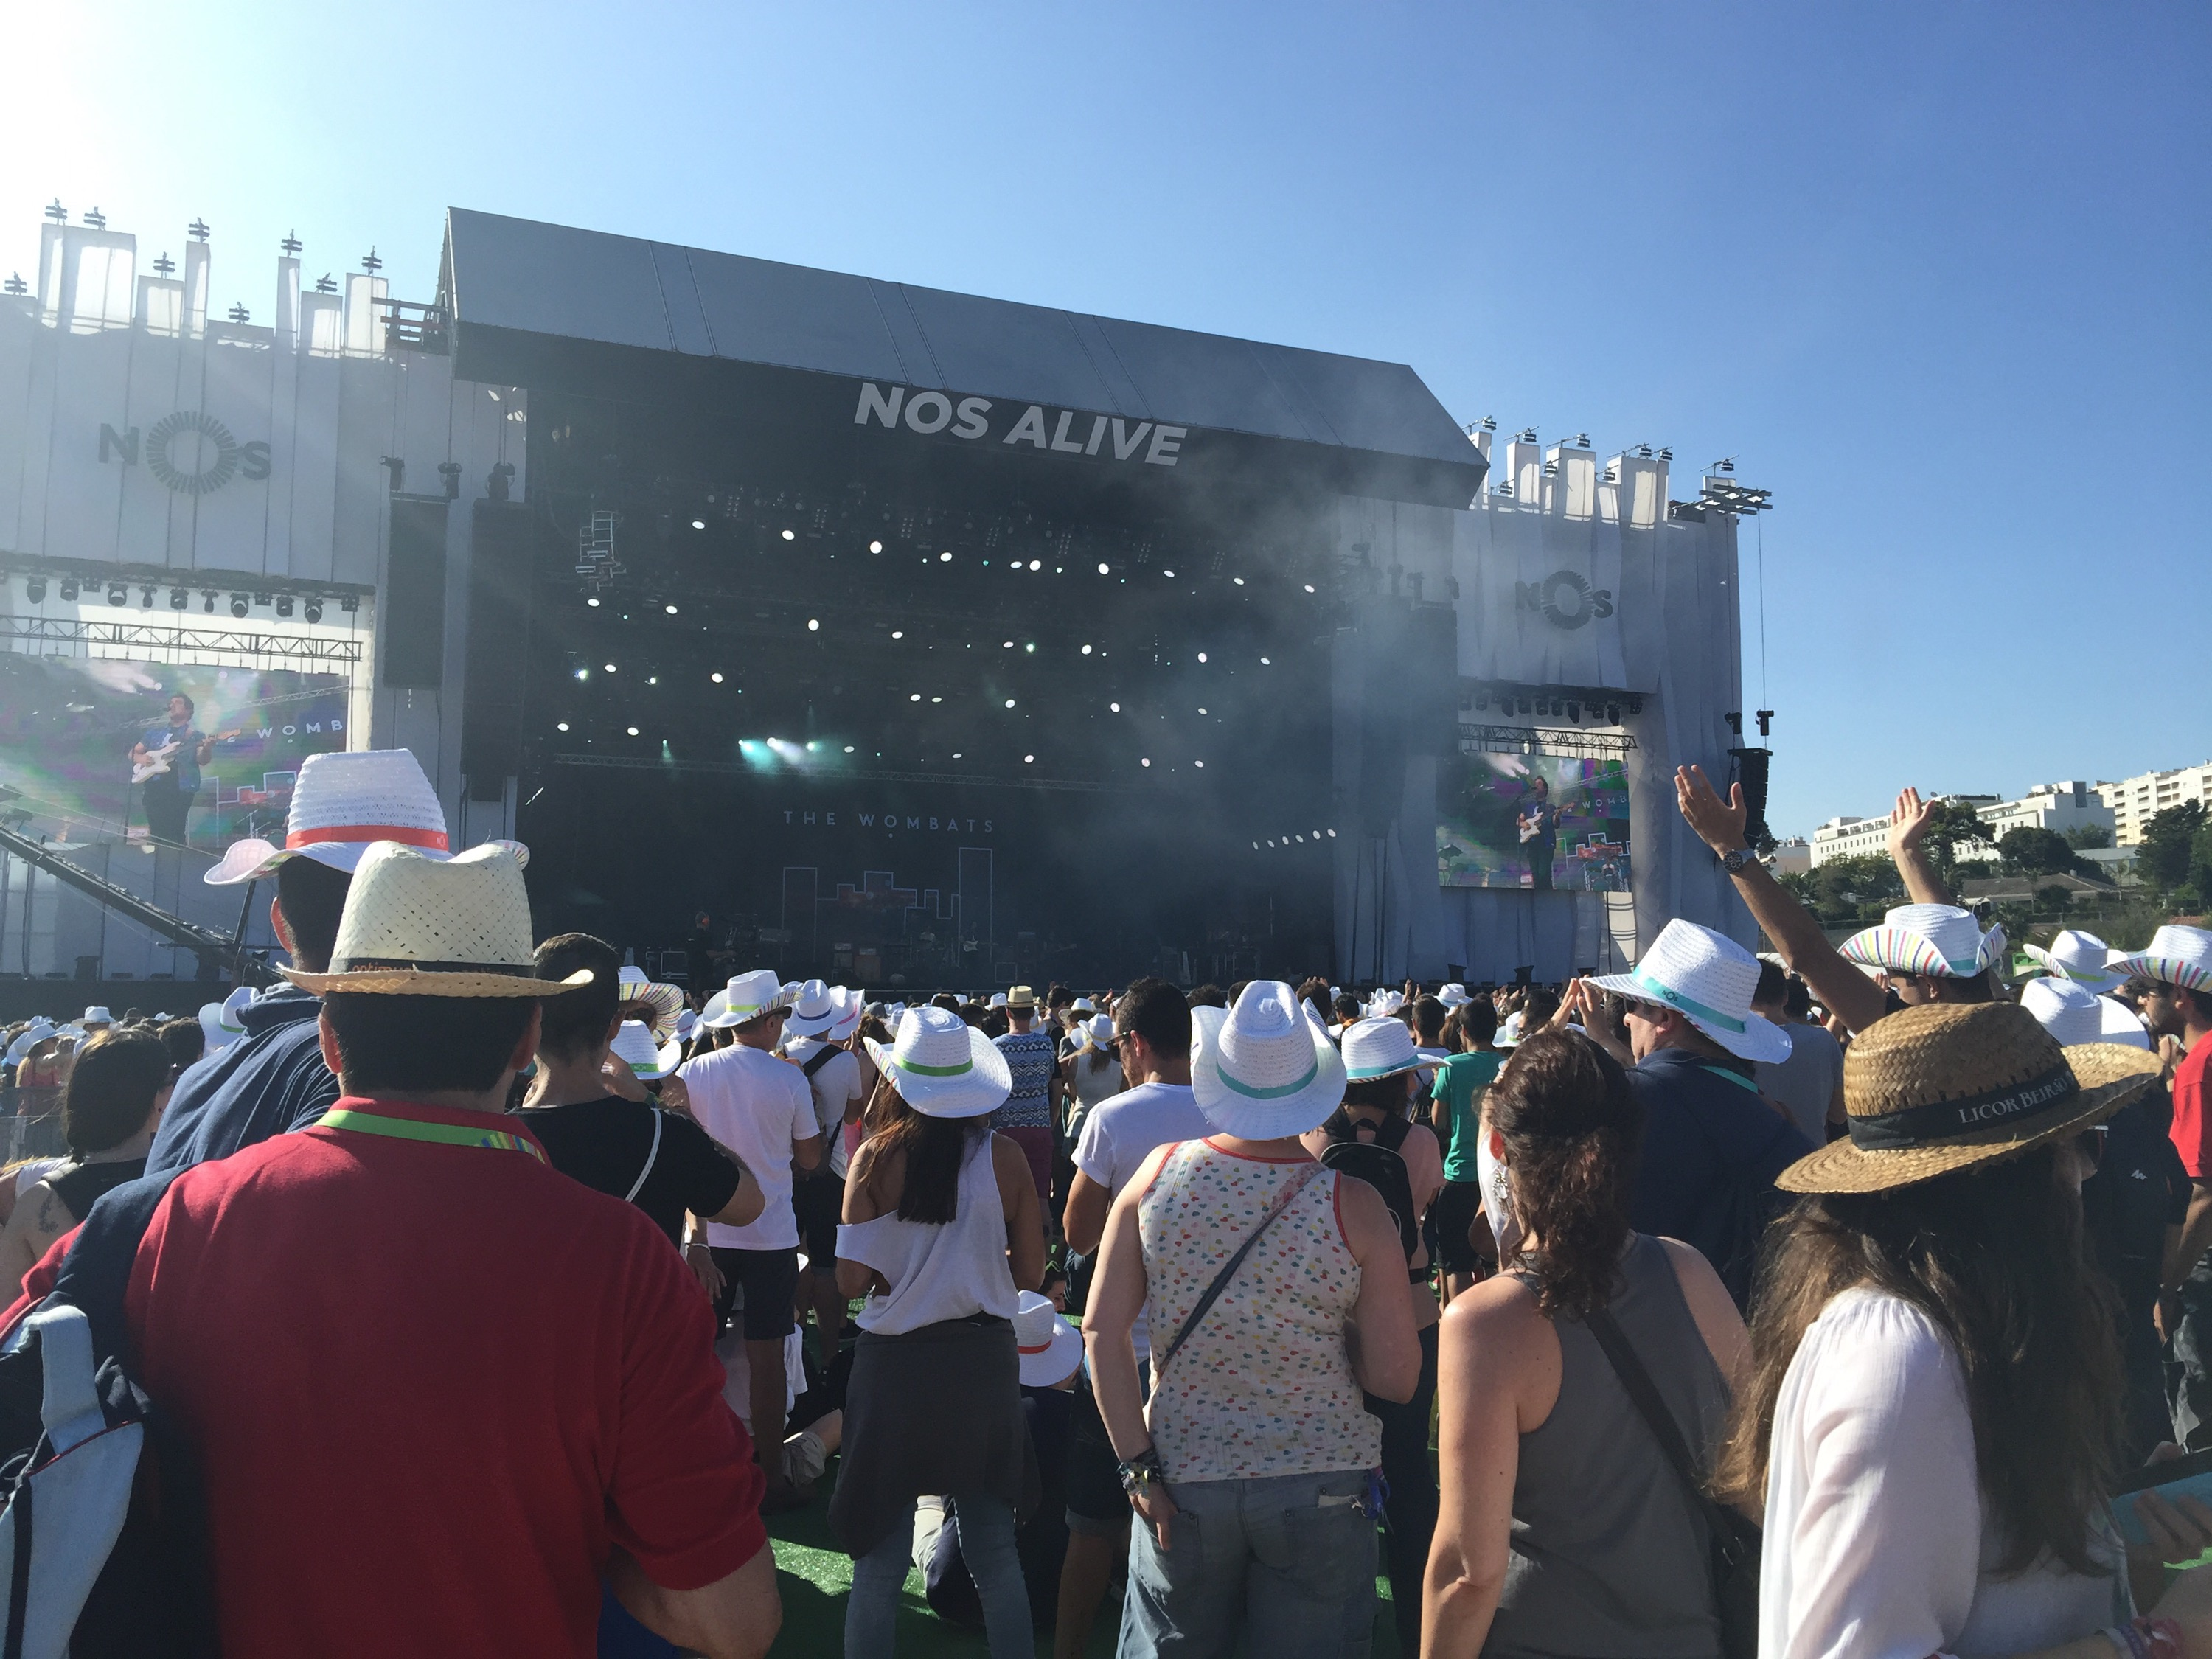 The Wombats no #nosalive